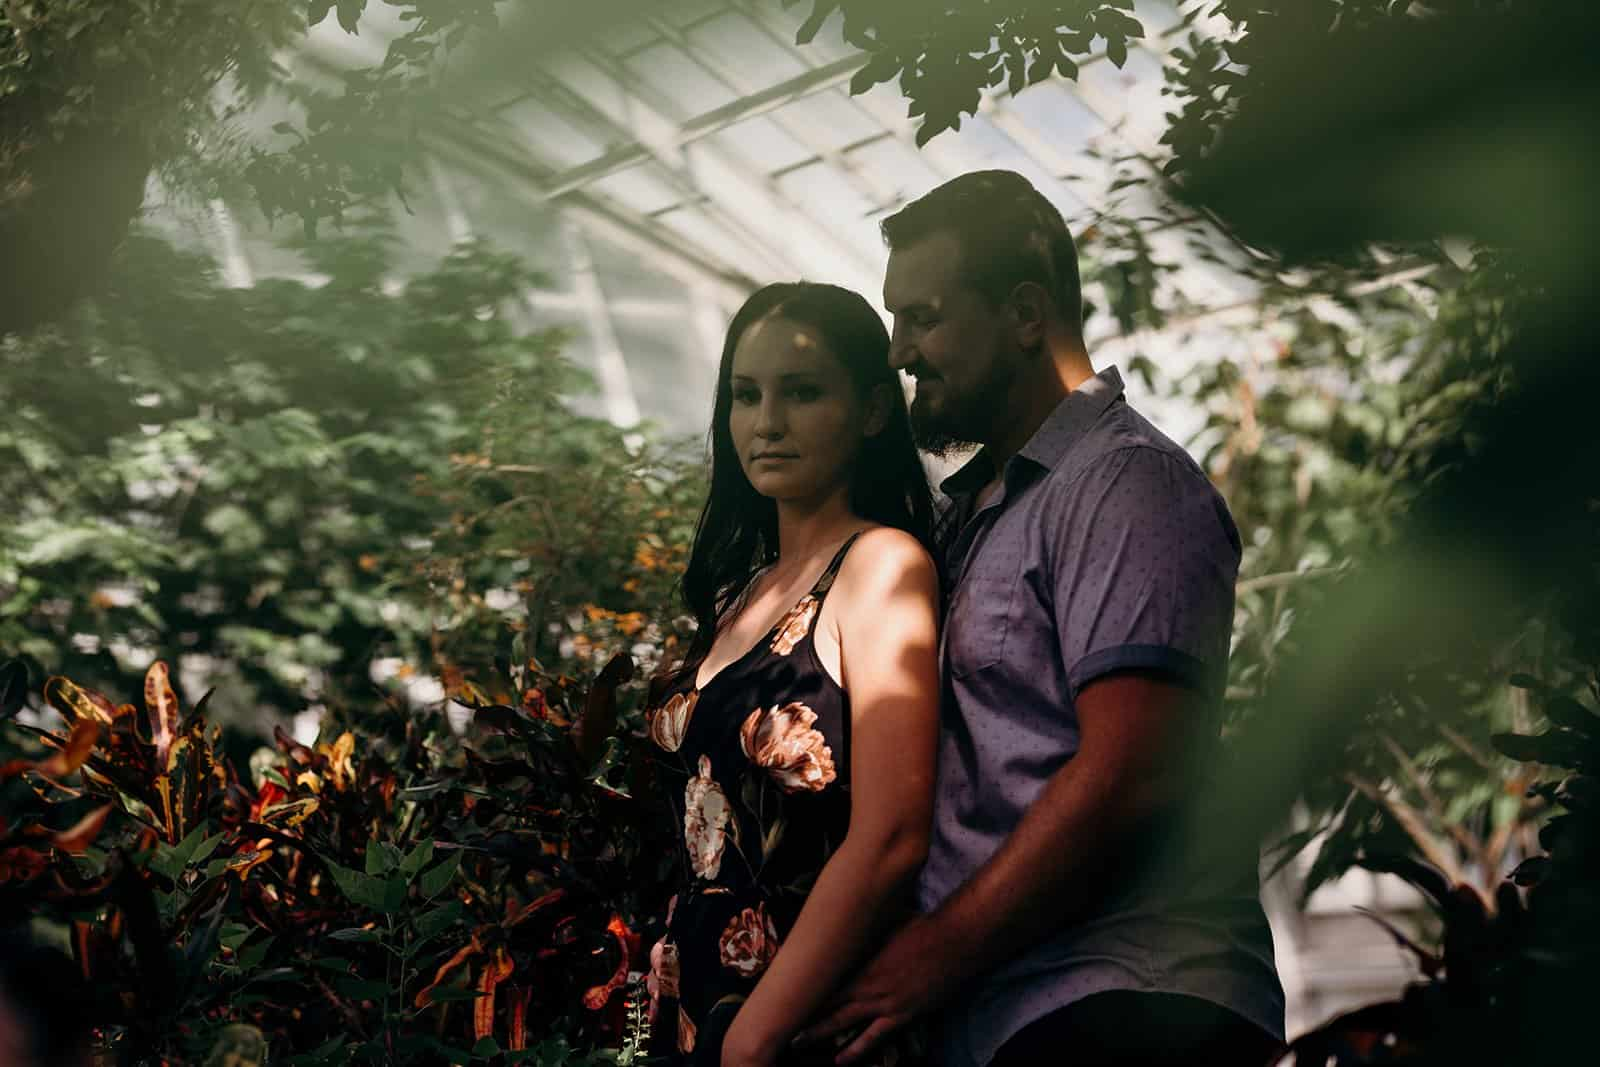 couple embrace through plants in greenhouse at Phipps Conservatory